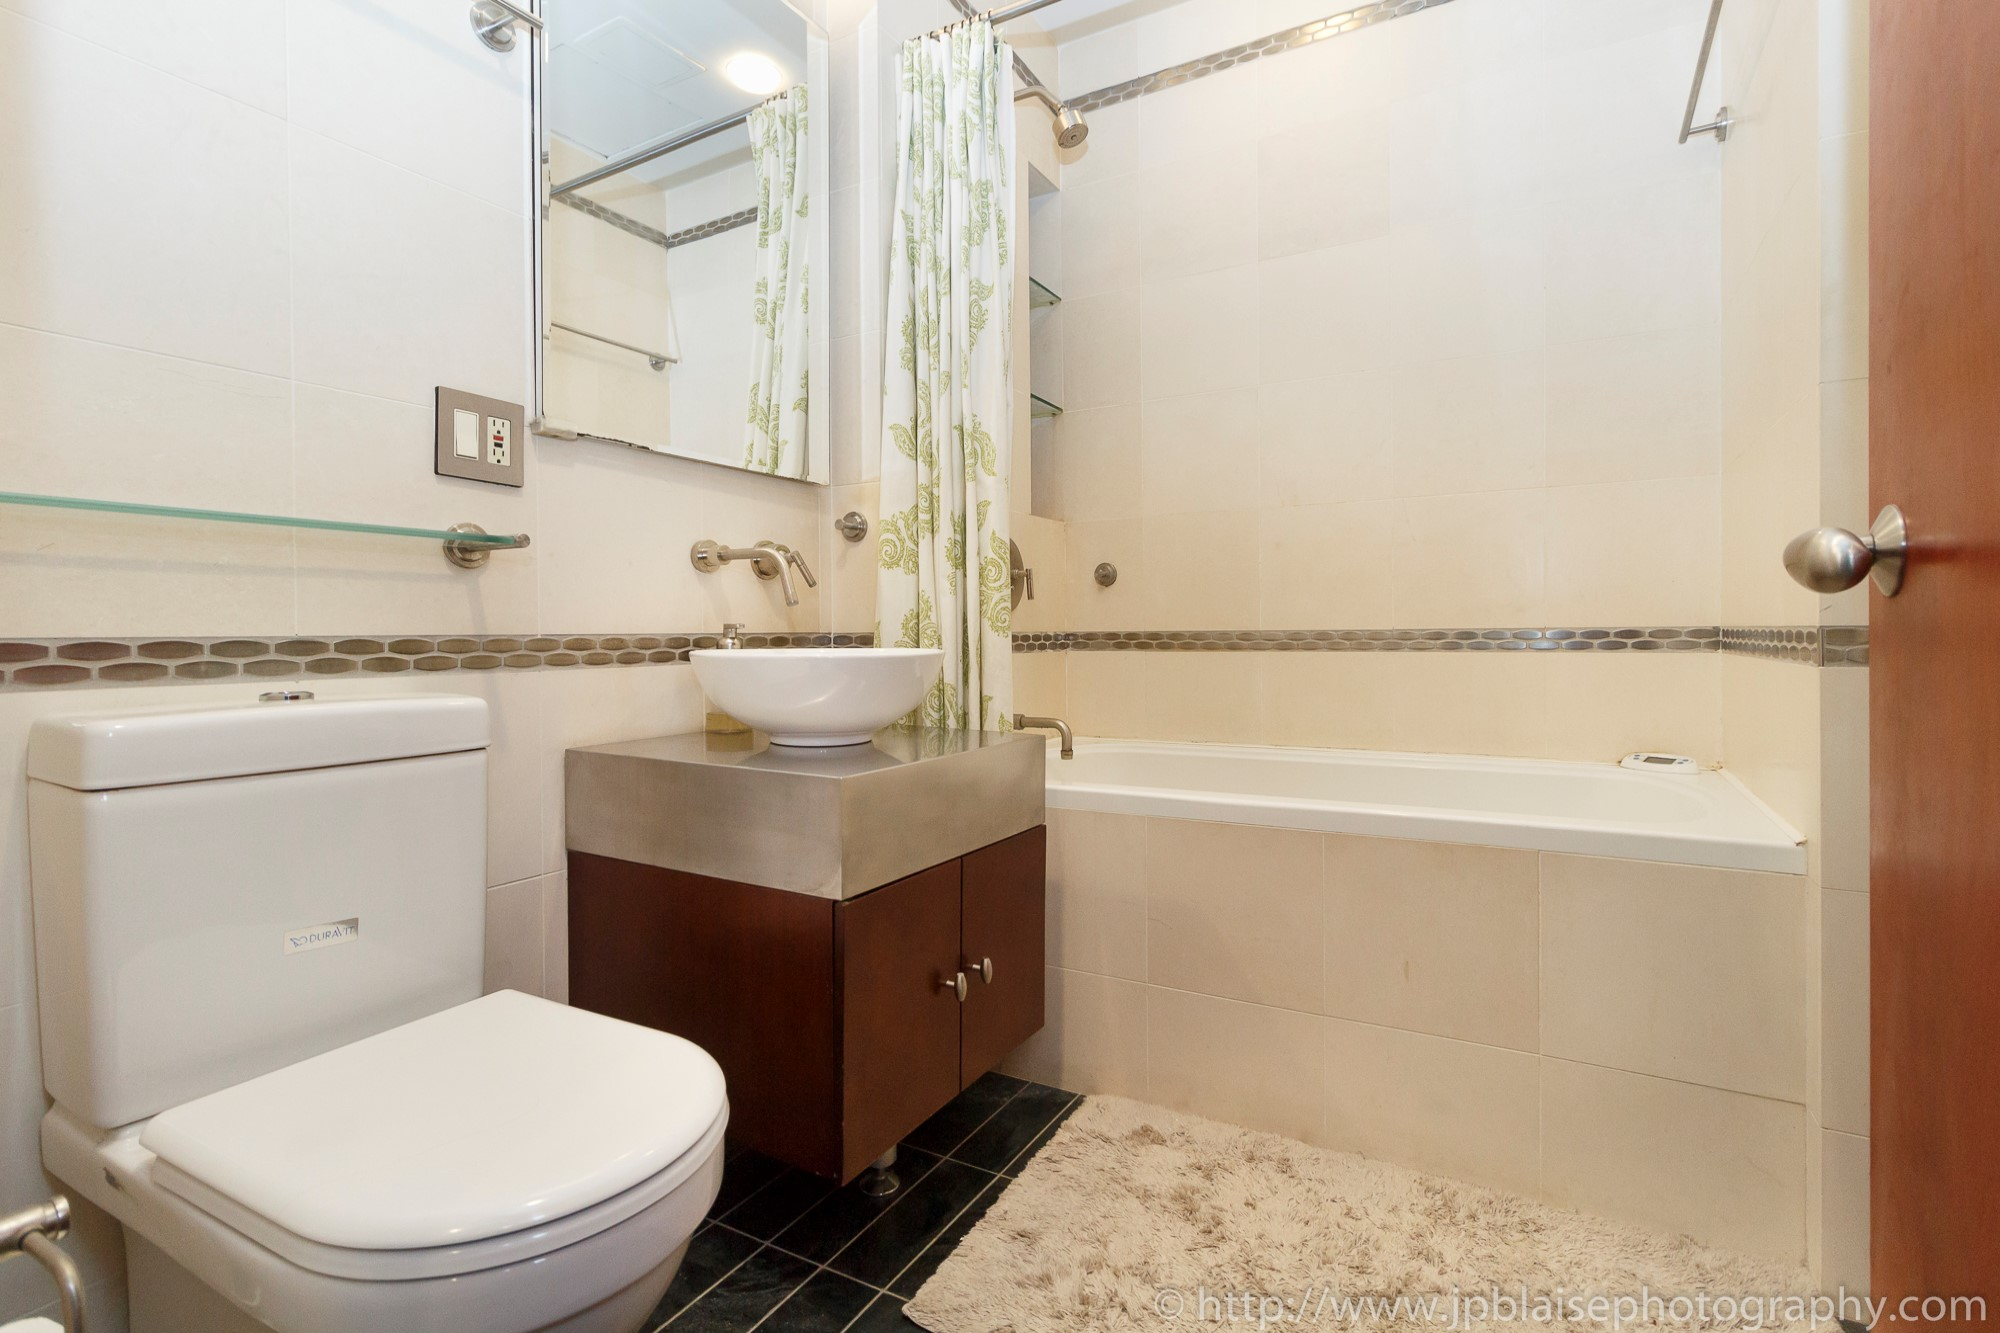 ny apartment photographer nyc real estate new york Manhattan Murray Hill bathroom city